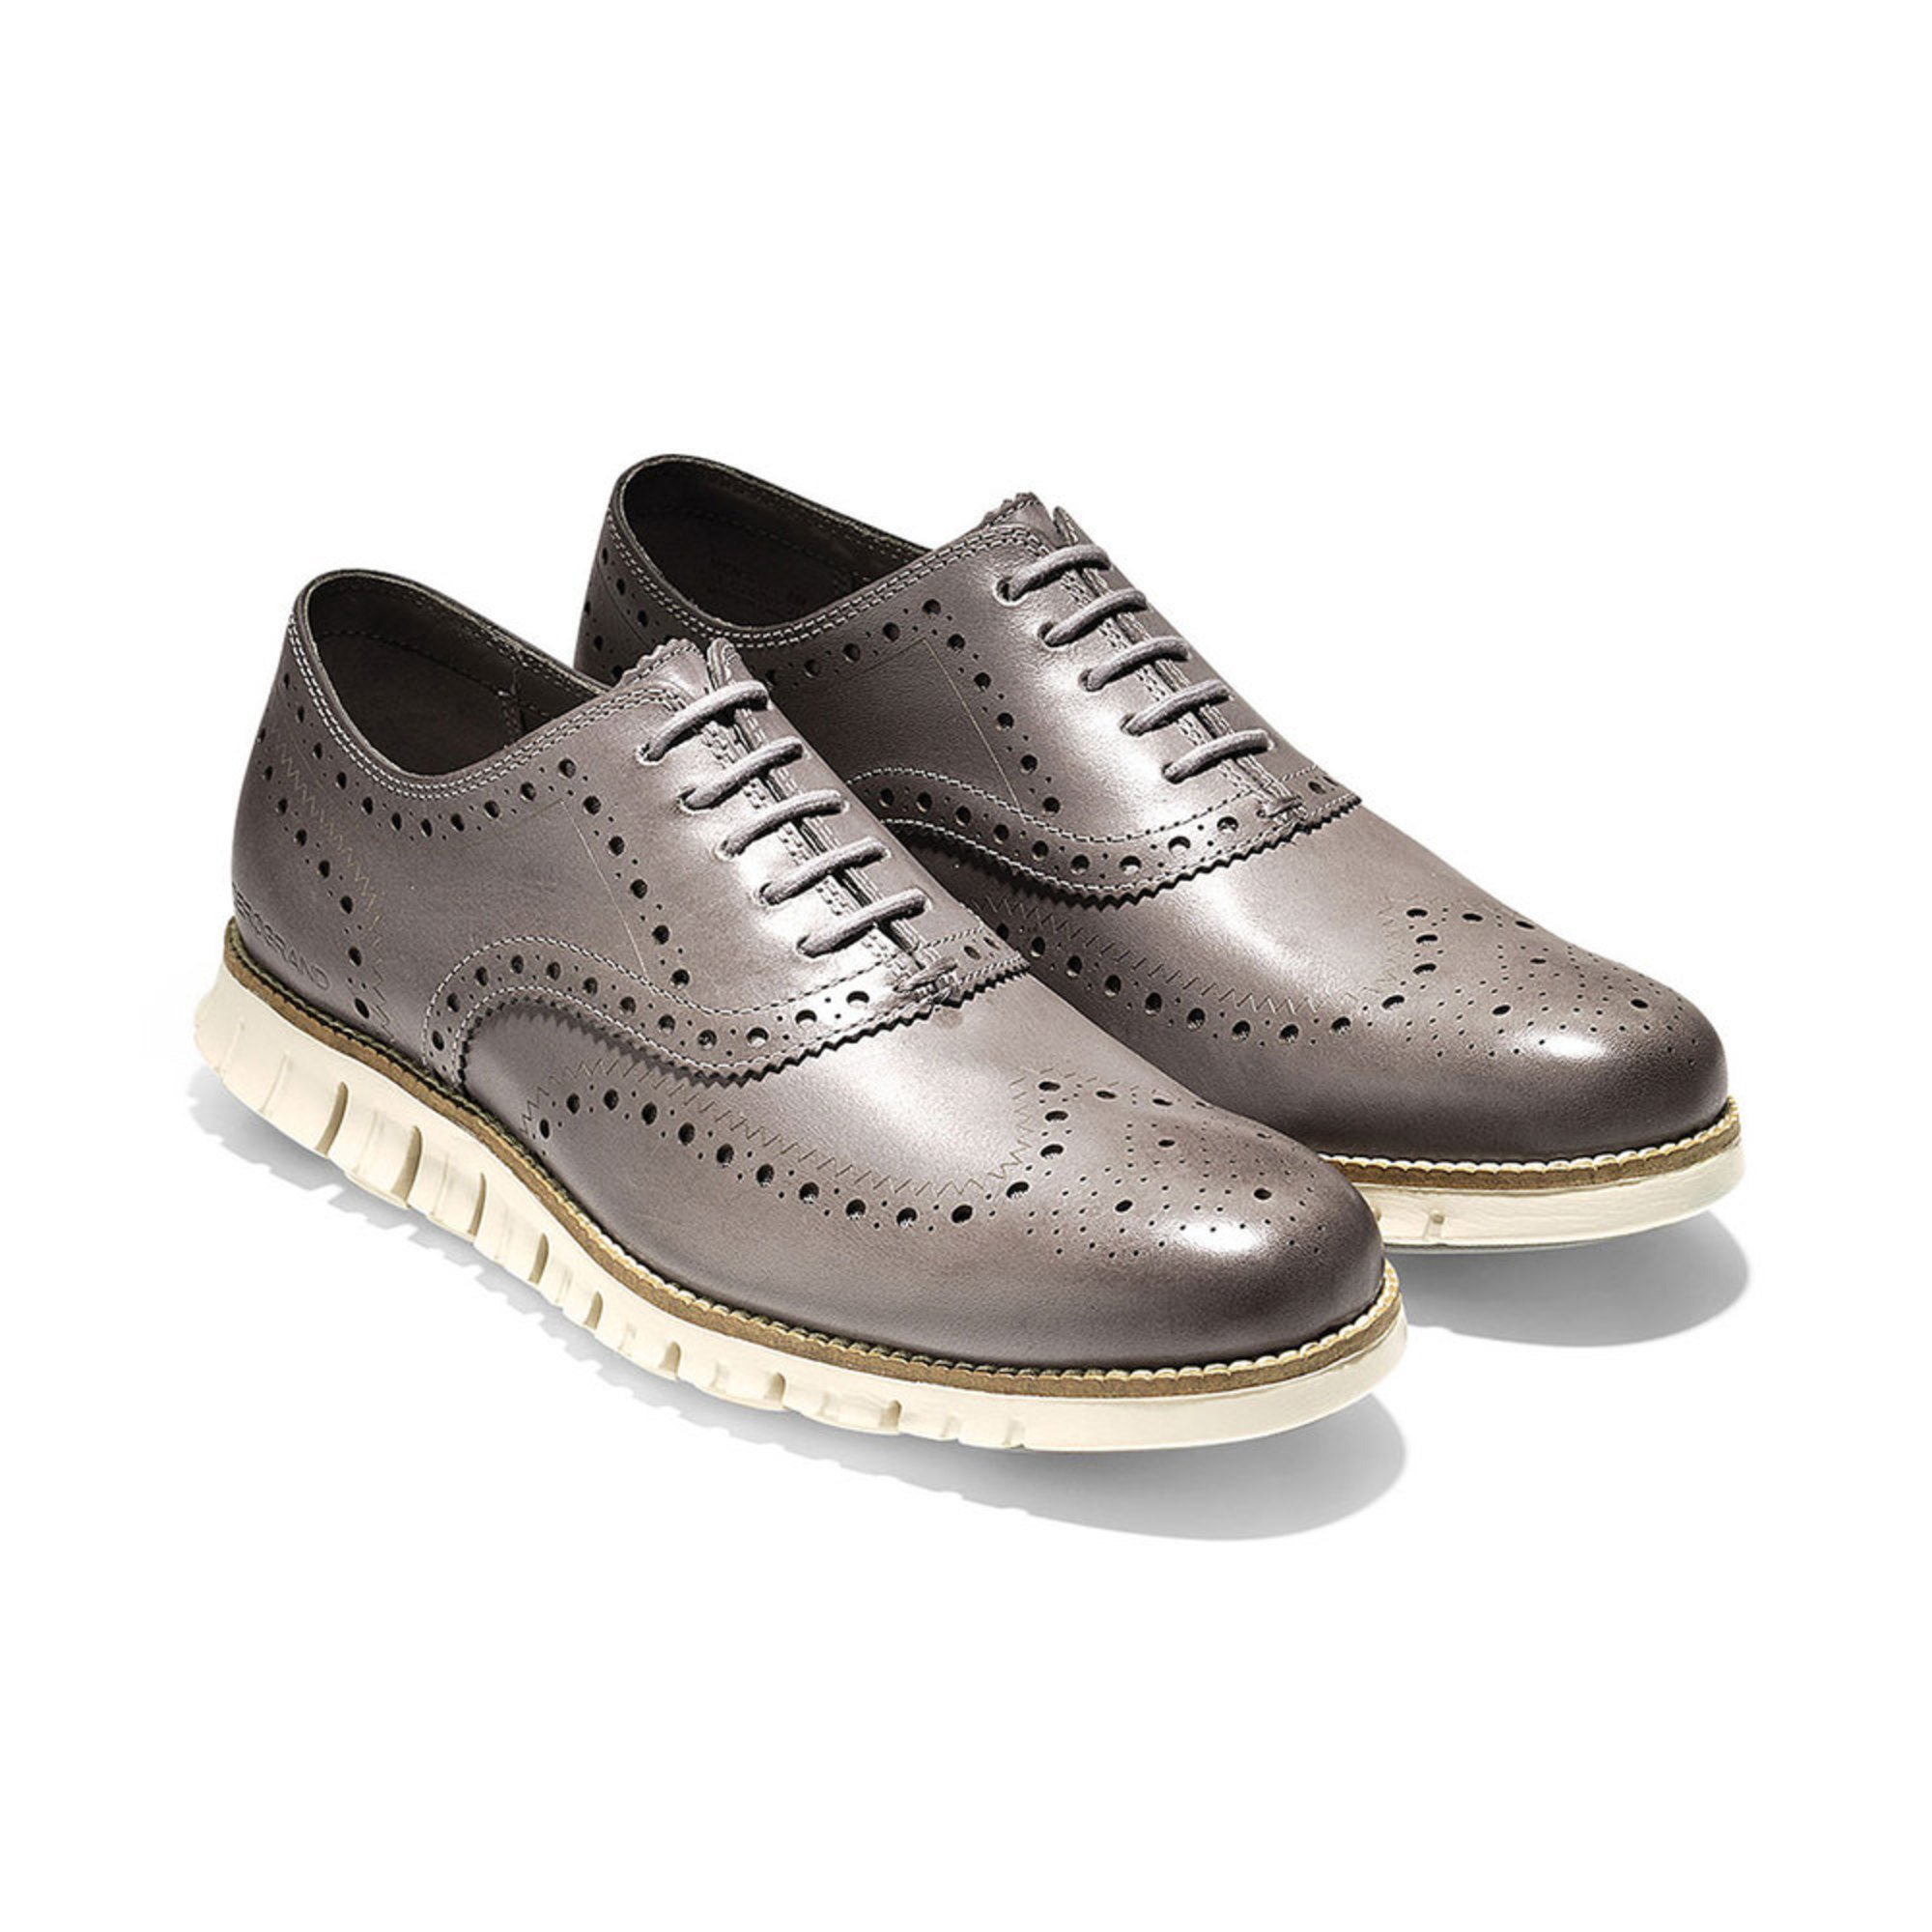 79391d8d97c8 Cole Haan Men s Zerogrand Wingtip Oxford